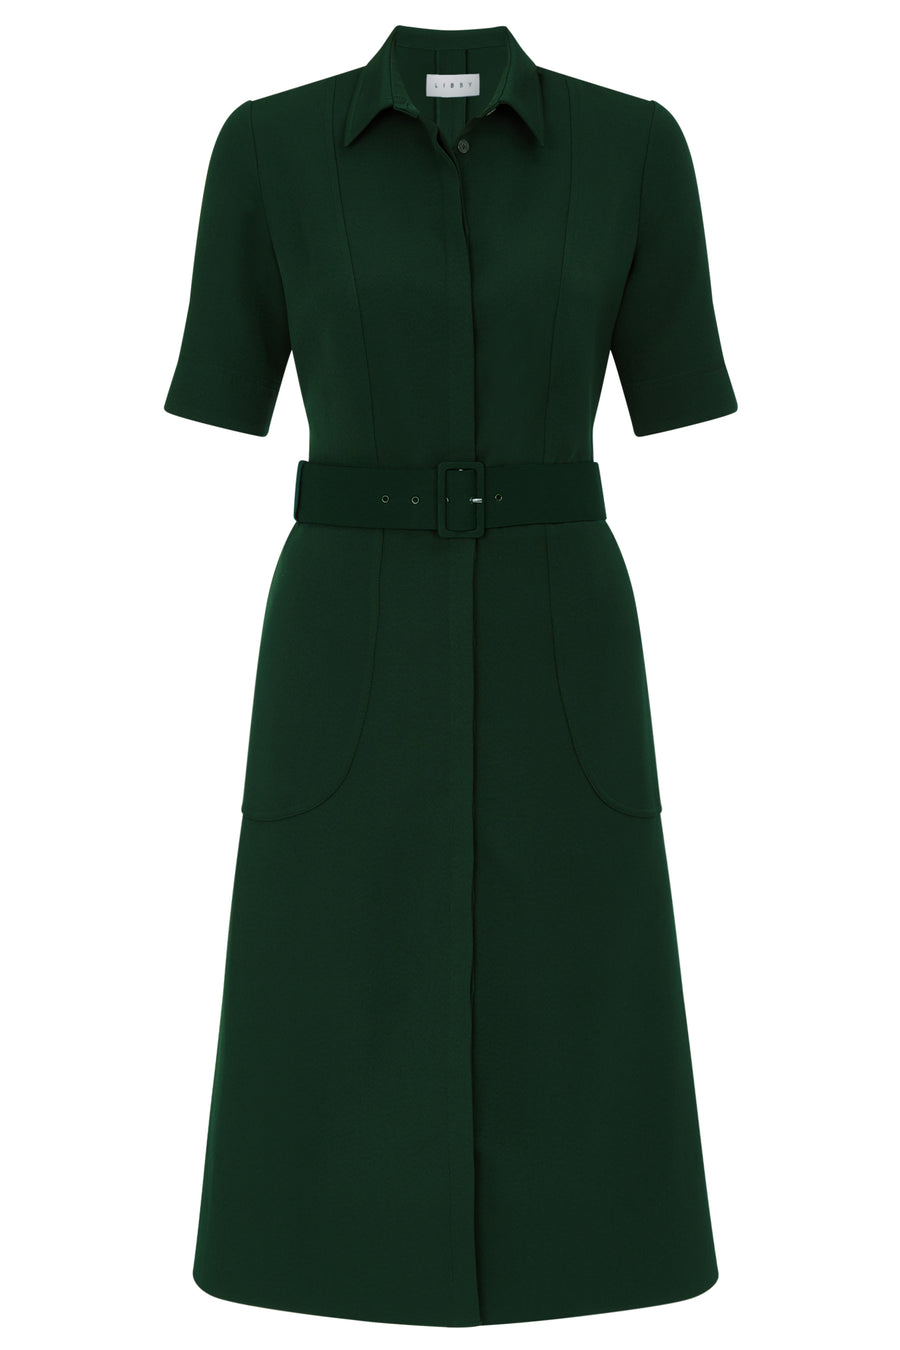 Belvedere Green Shirt Dress